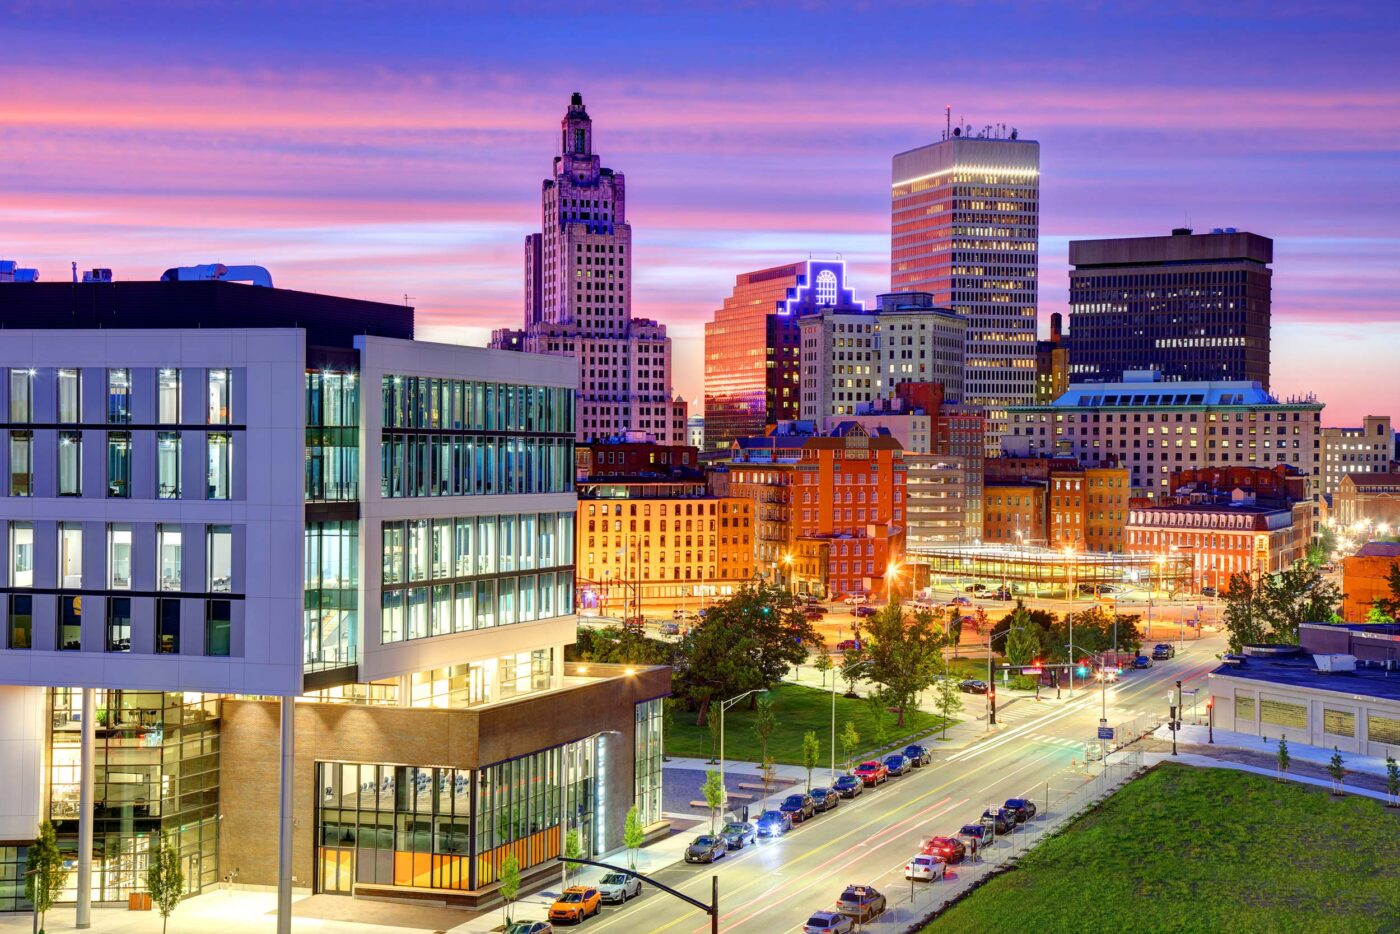 Providence announces new policies on climate justice